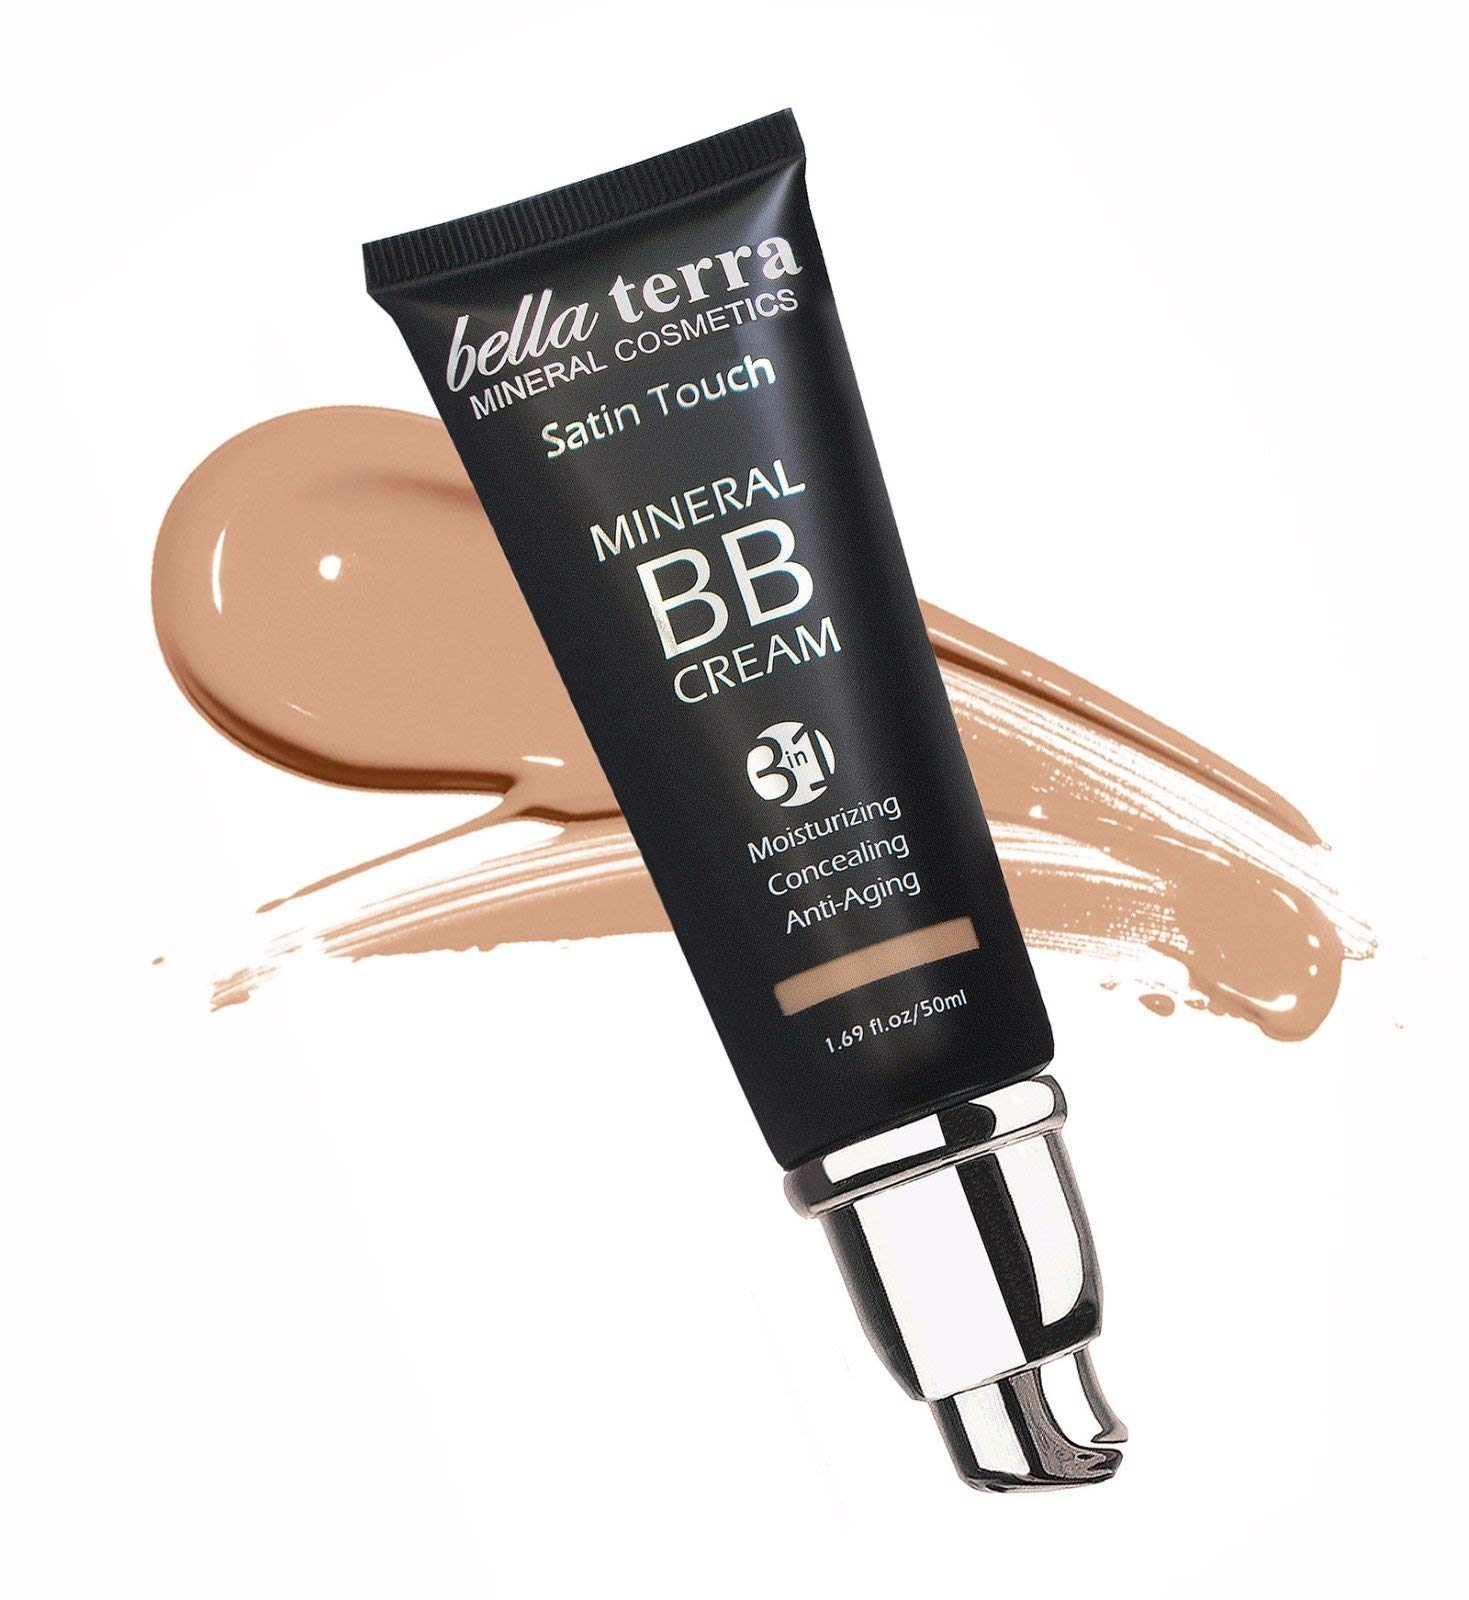 Bella Terra BB Cream 3-in-1 Tinted Moisturizer - Buildable Coverage - Light to Dark Skin Tones- with Natural SPF- Mineral Makeup Foundation- Hypoallergenic (1.69 Oz) (Medium b 104)